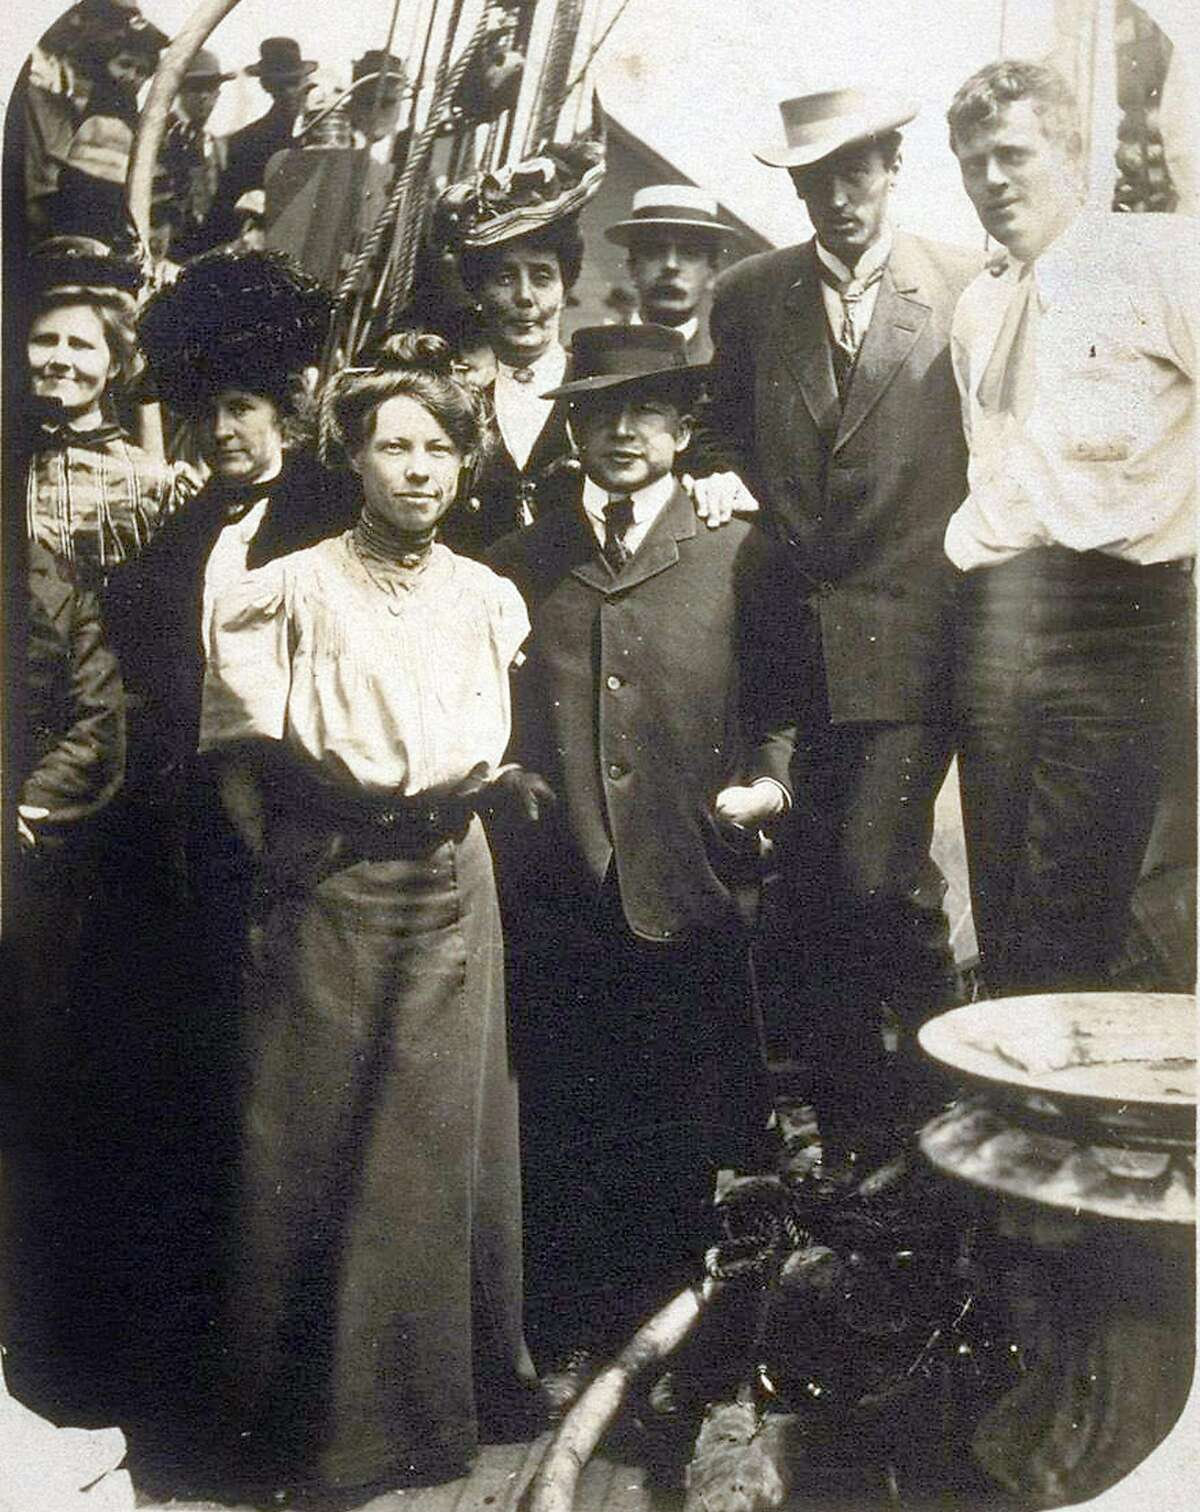 Poet George Sterling (second from right) with writer Jack London (far right) and friends.